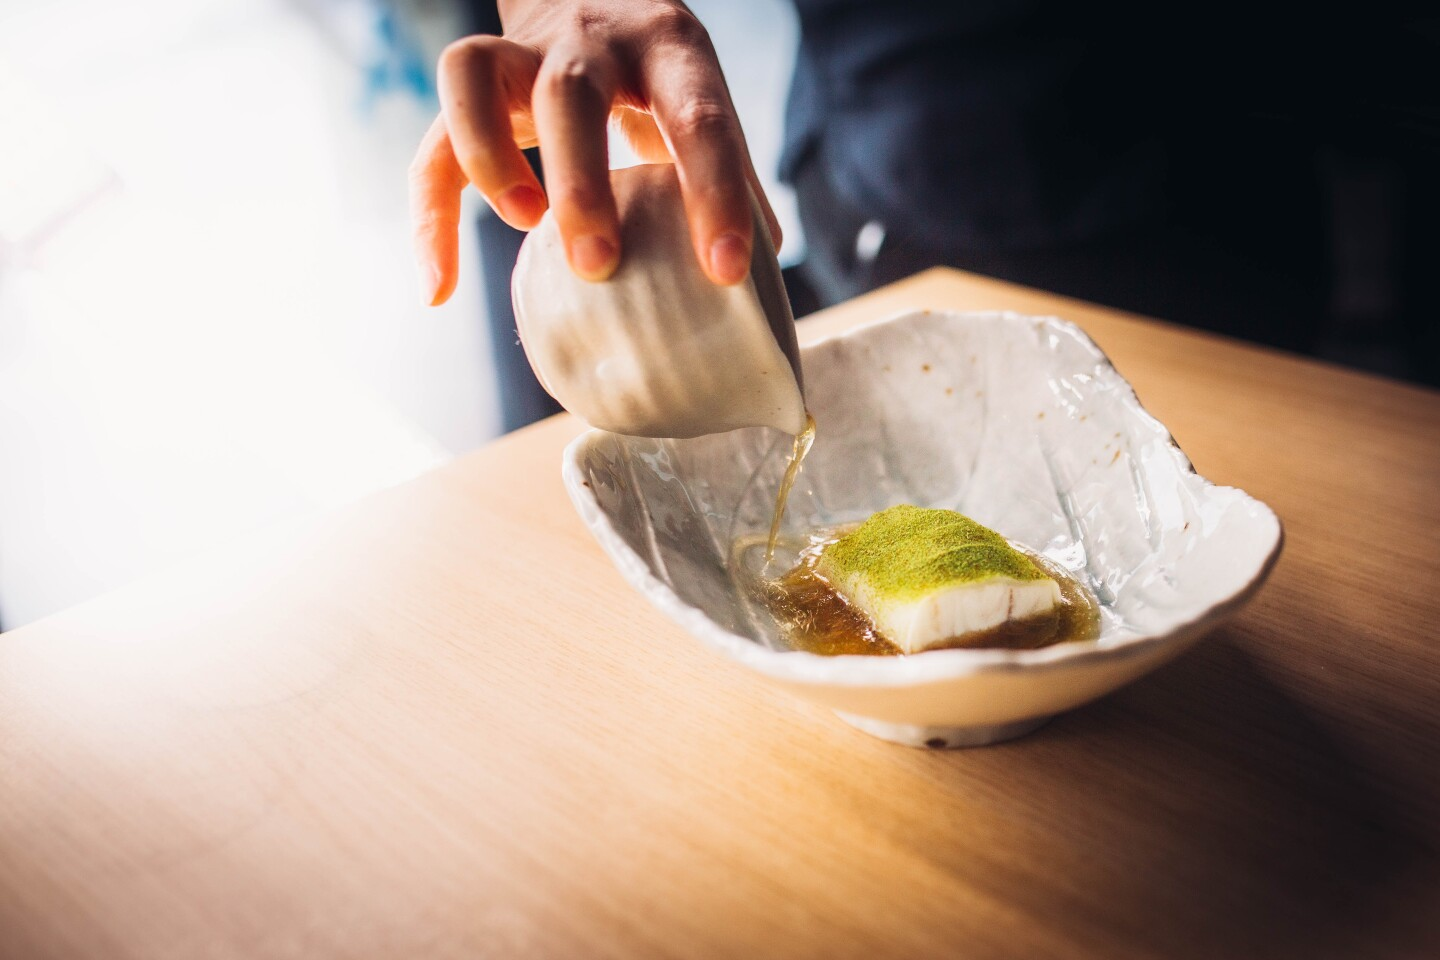 An asymmetrical ceramic dish holds a small, bite-sized piece of white steamed fish sitting in a thin, broth-y sauce. The fish is topped with a fine green powder. Additionally, someone is pouring more of the sauce from a small ceramic container.